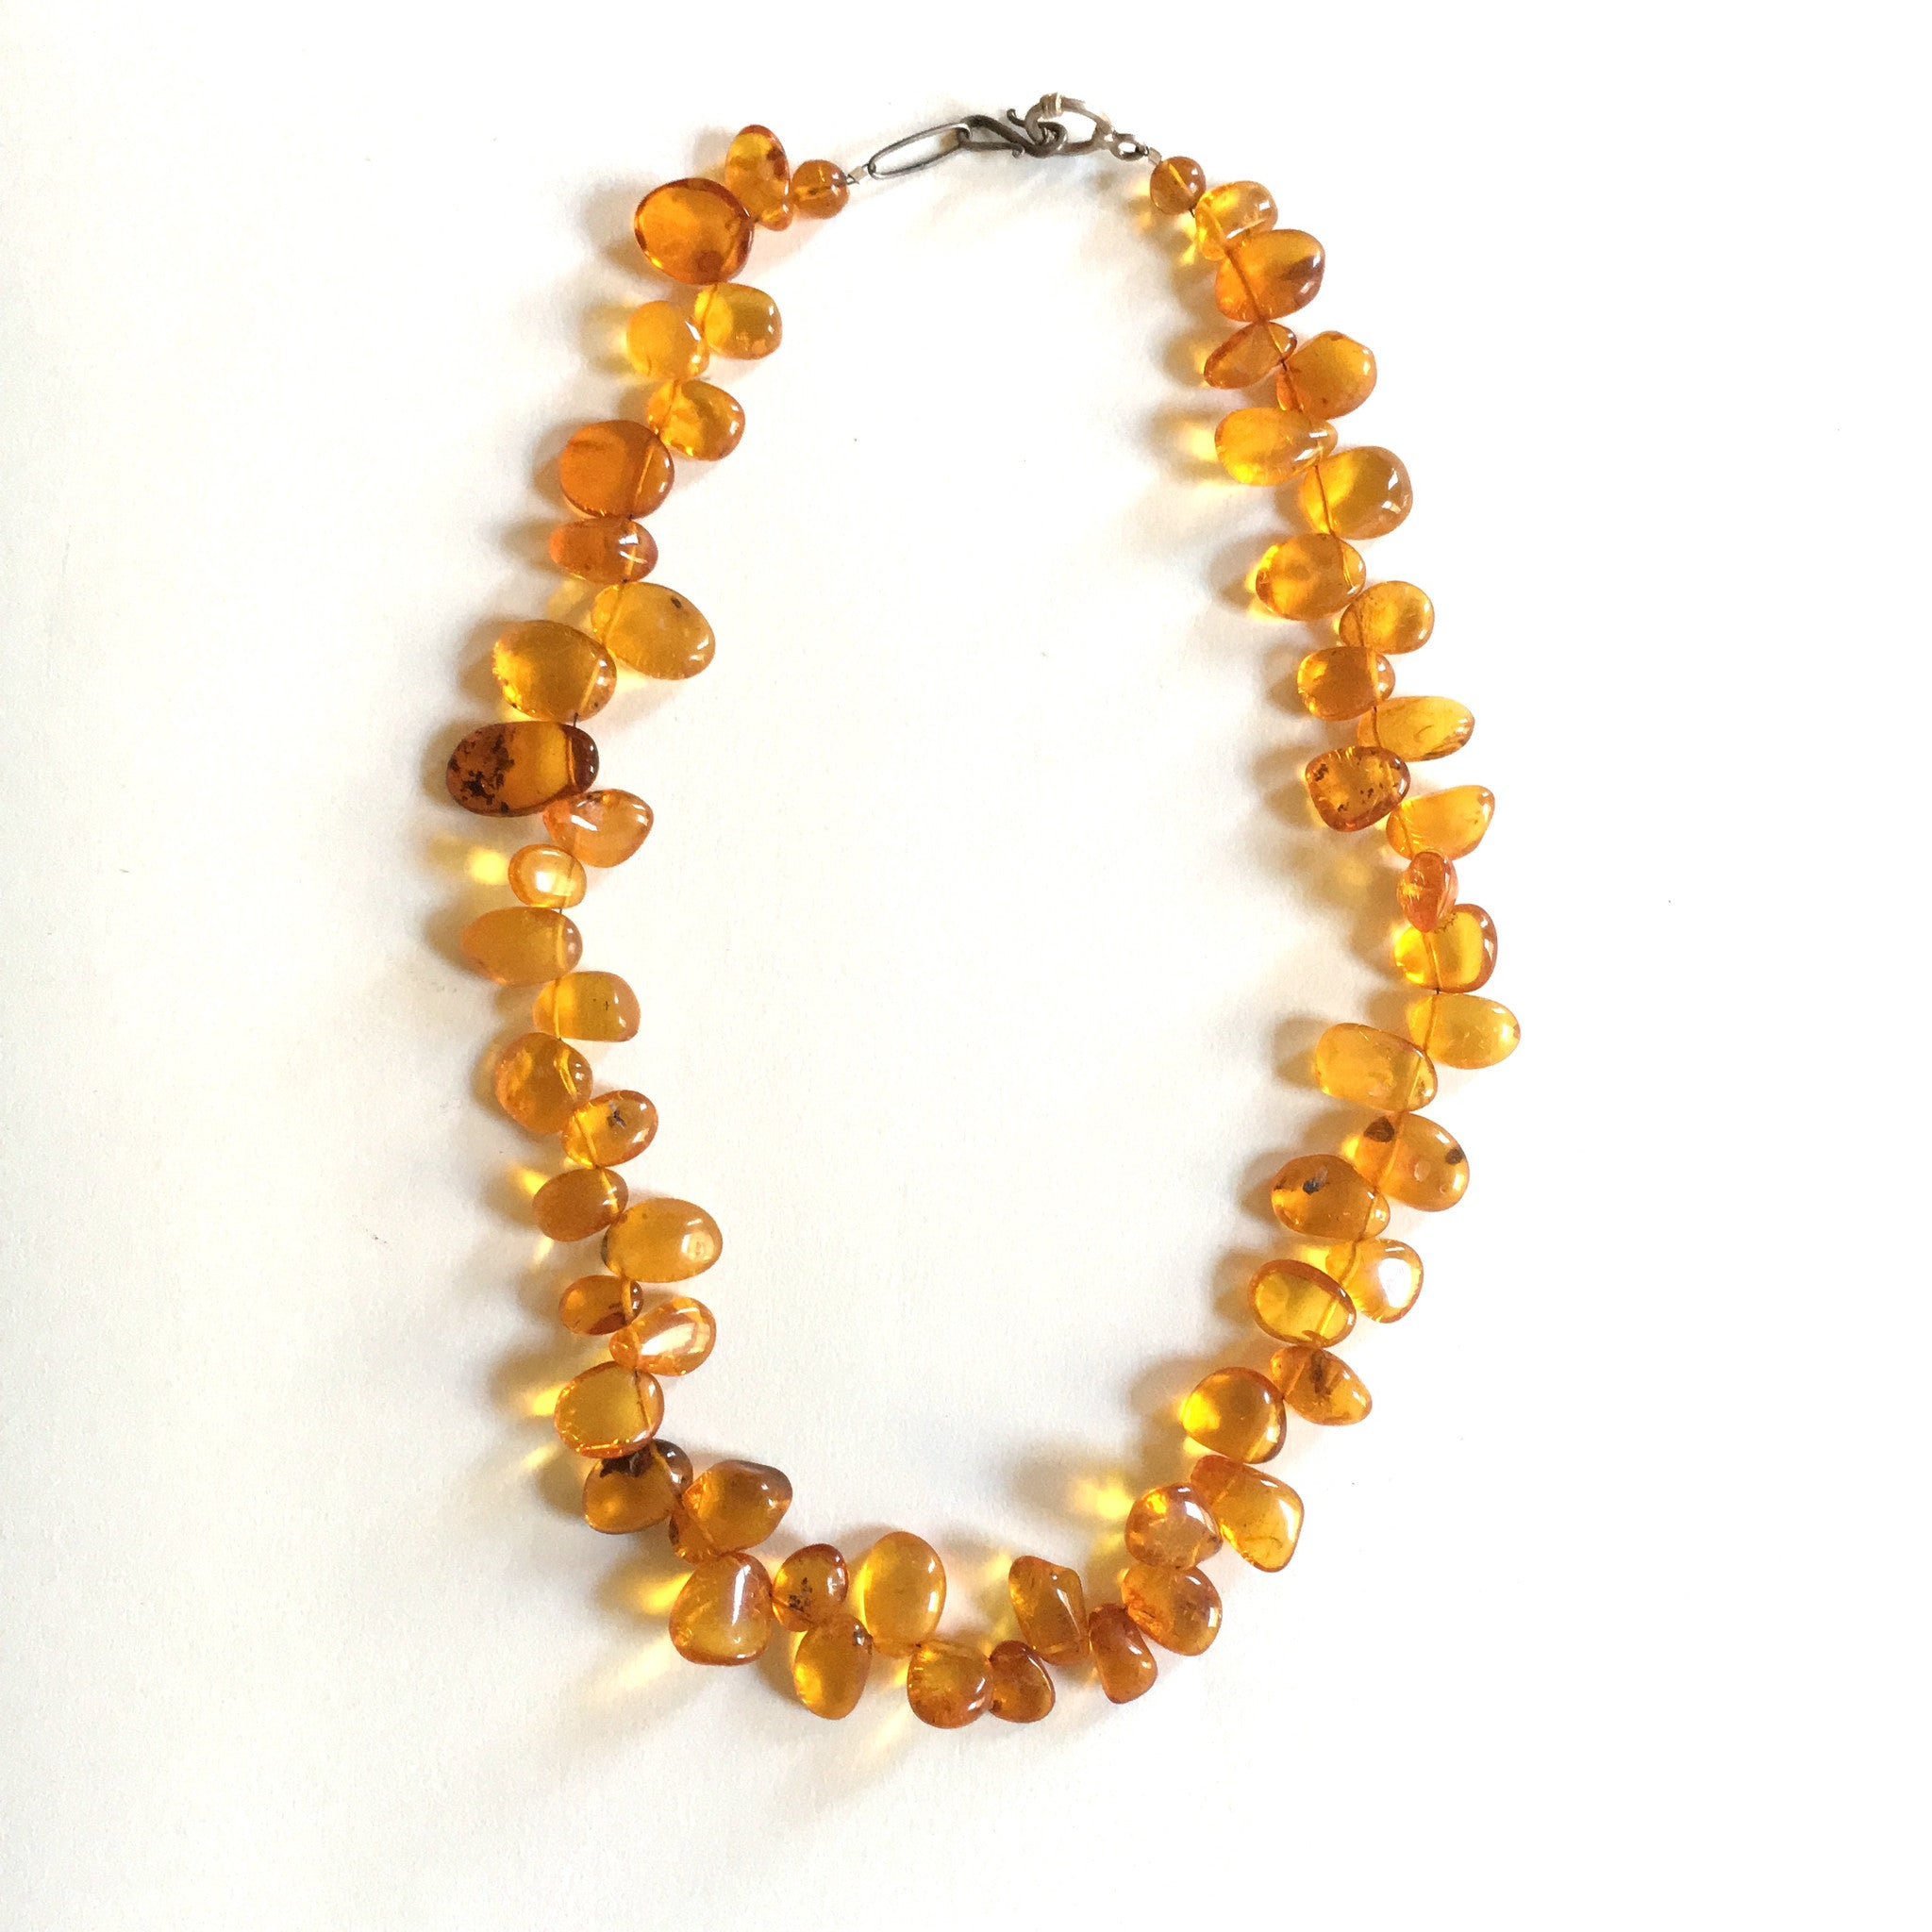 Quality Vintage Amber /& Gold Beaded Necklace